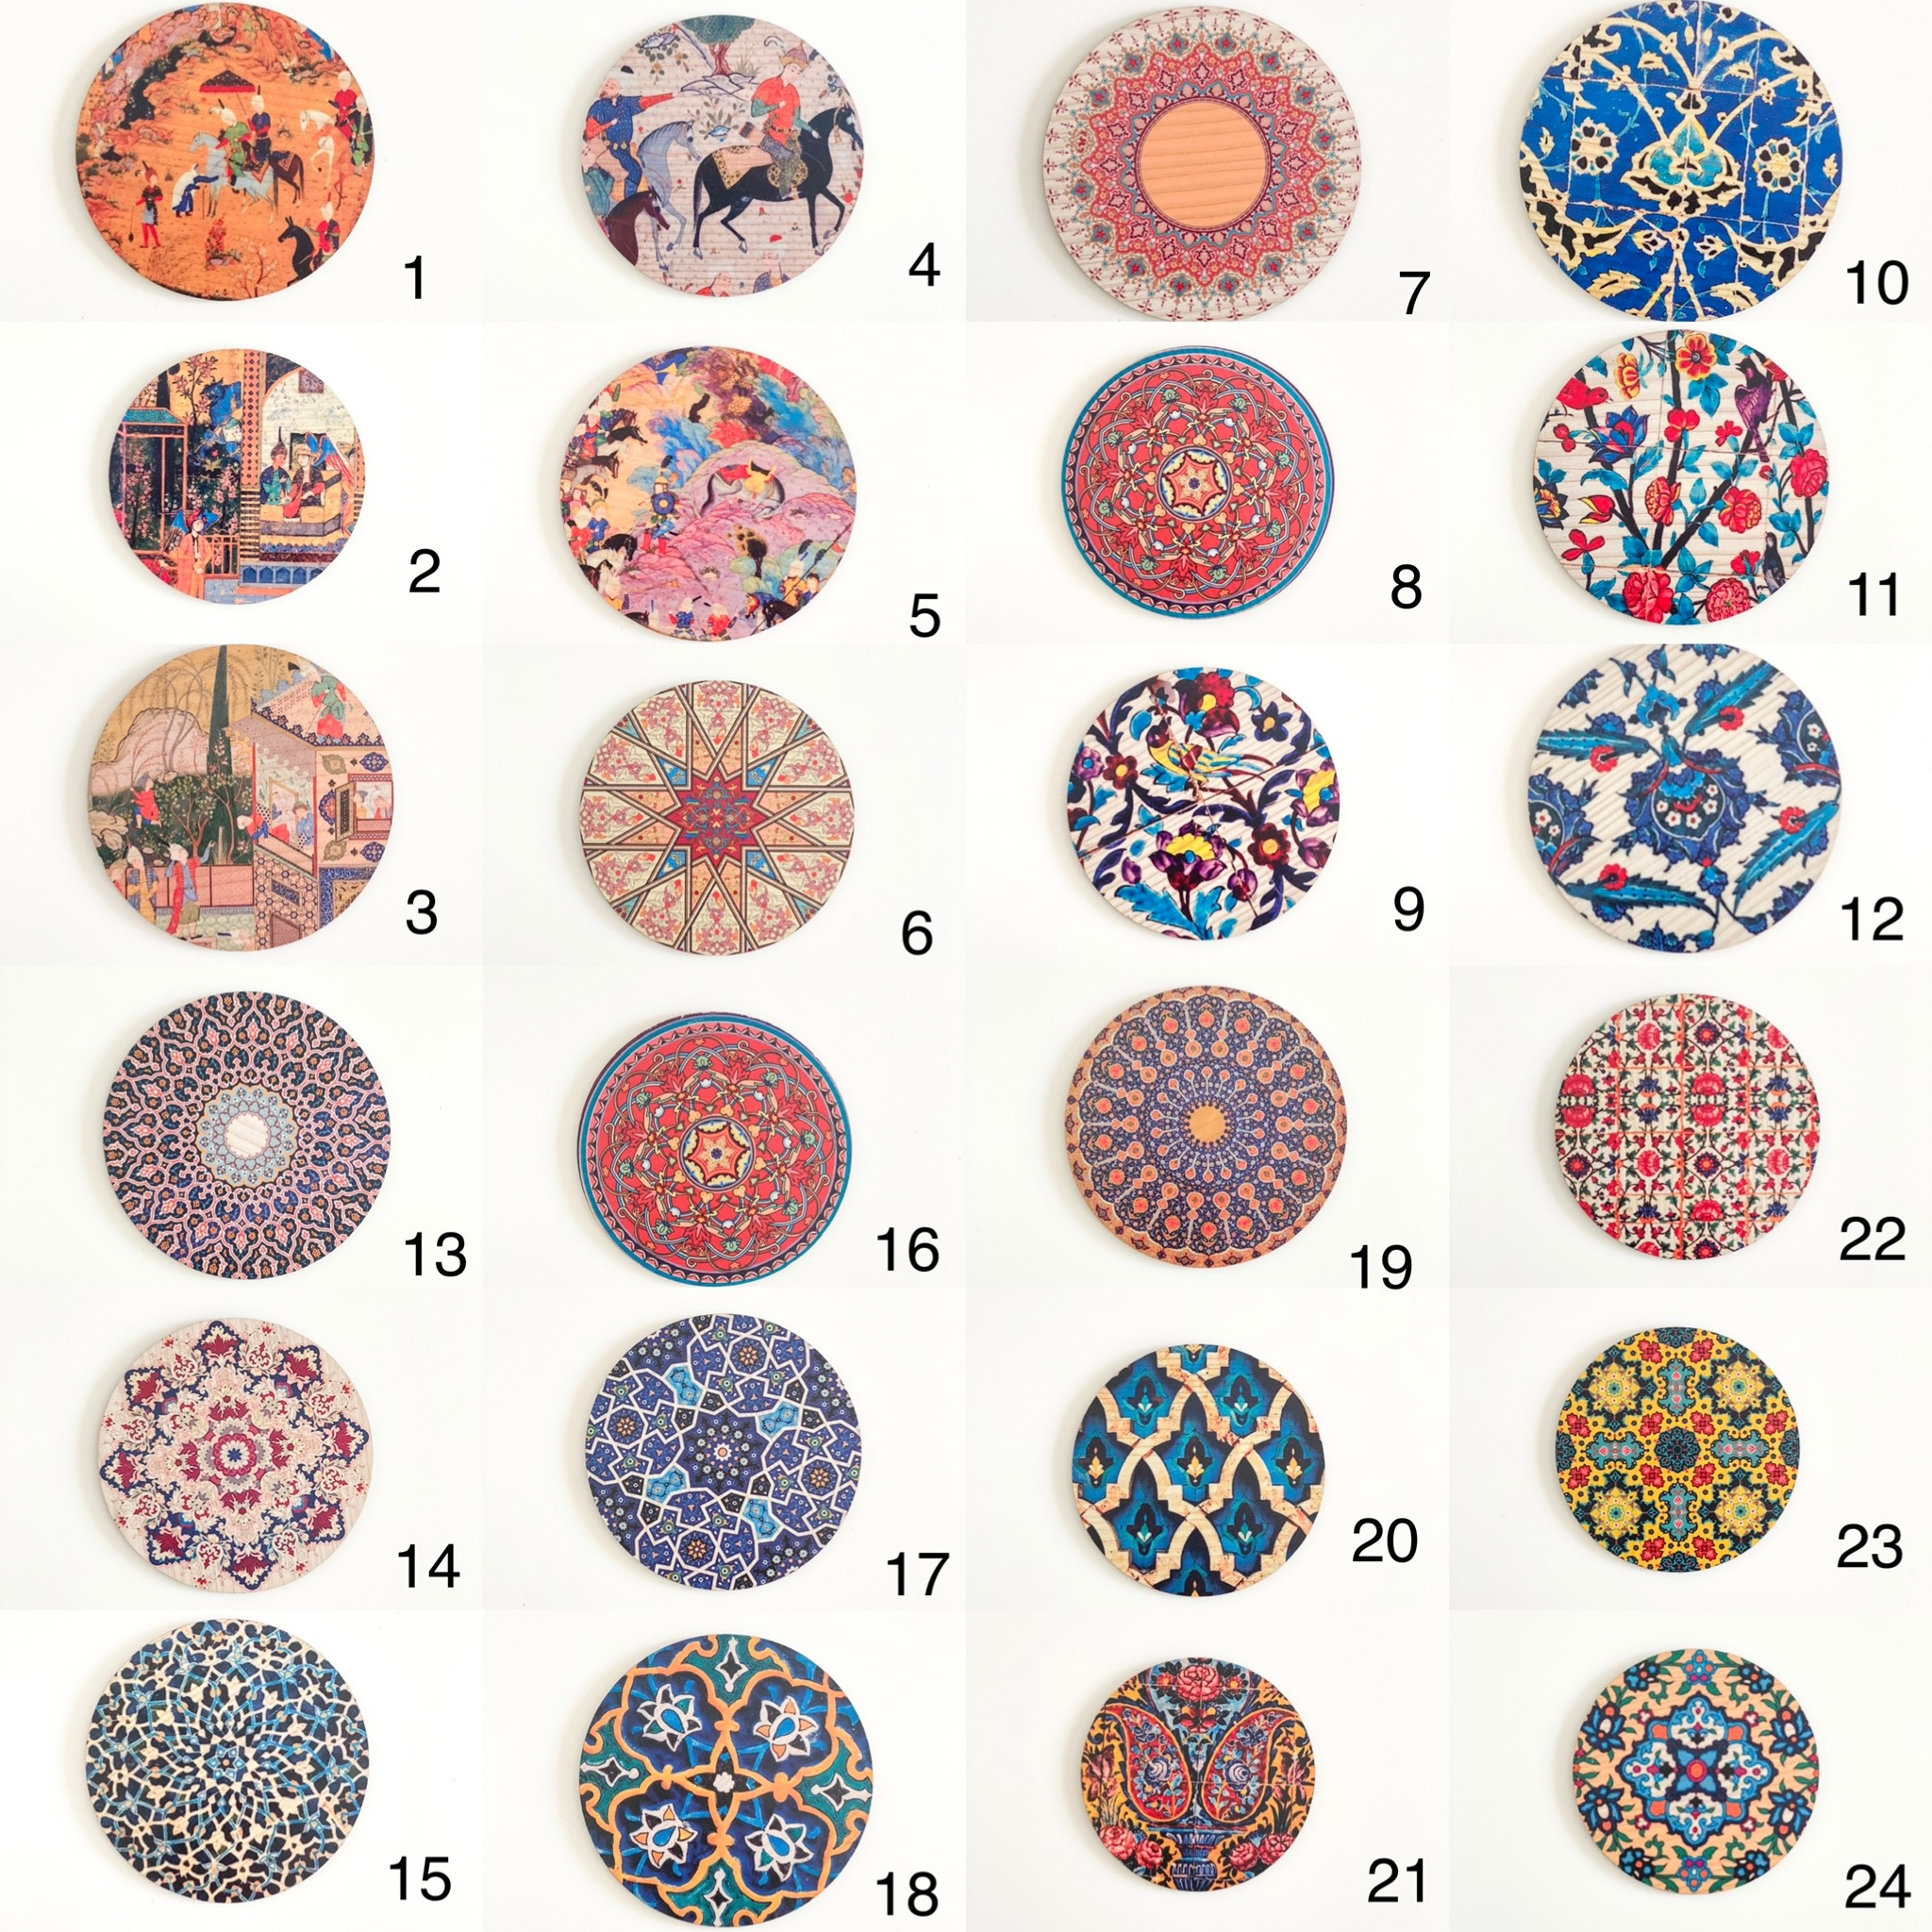 Wooden Round Coasters with Persian Patterns ( available in 24 patterns )